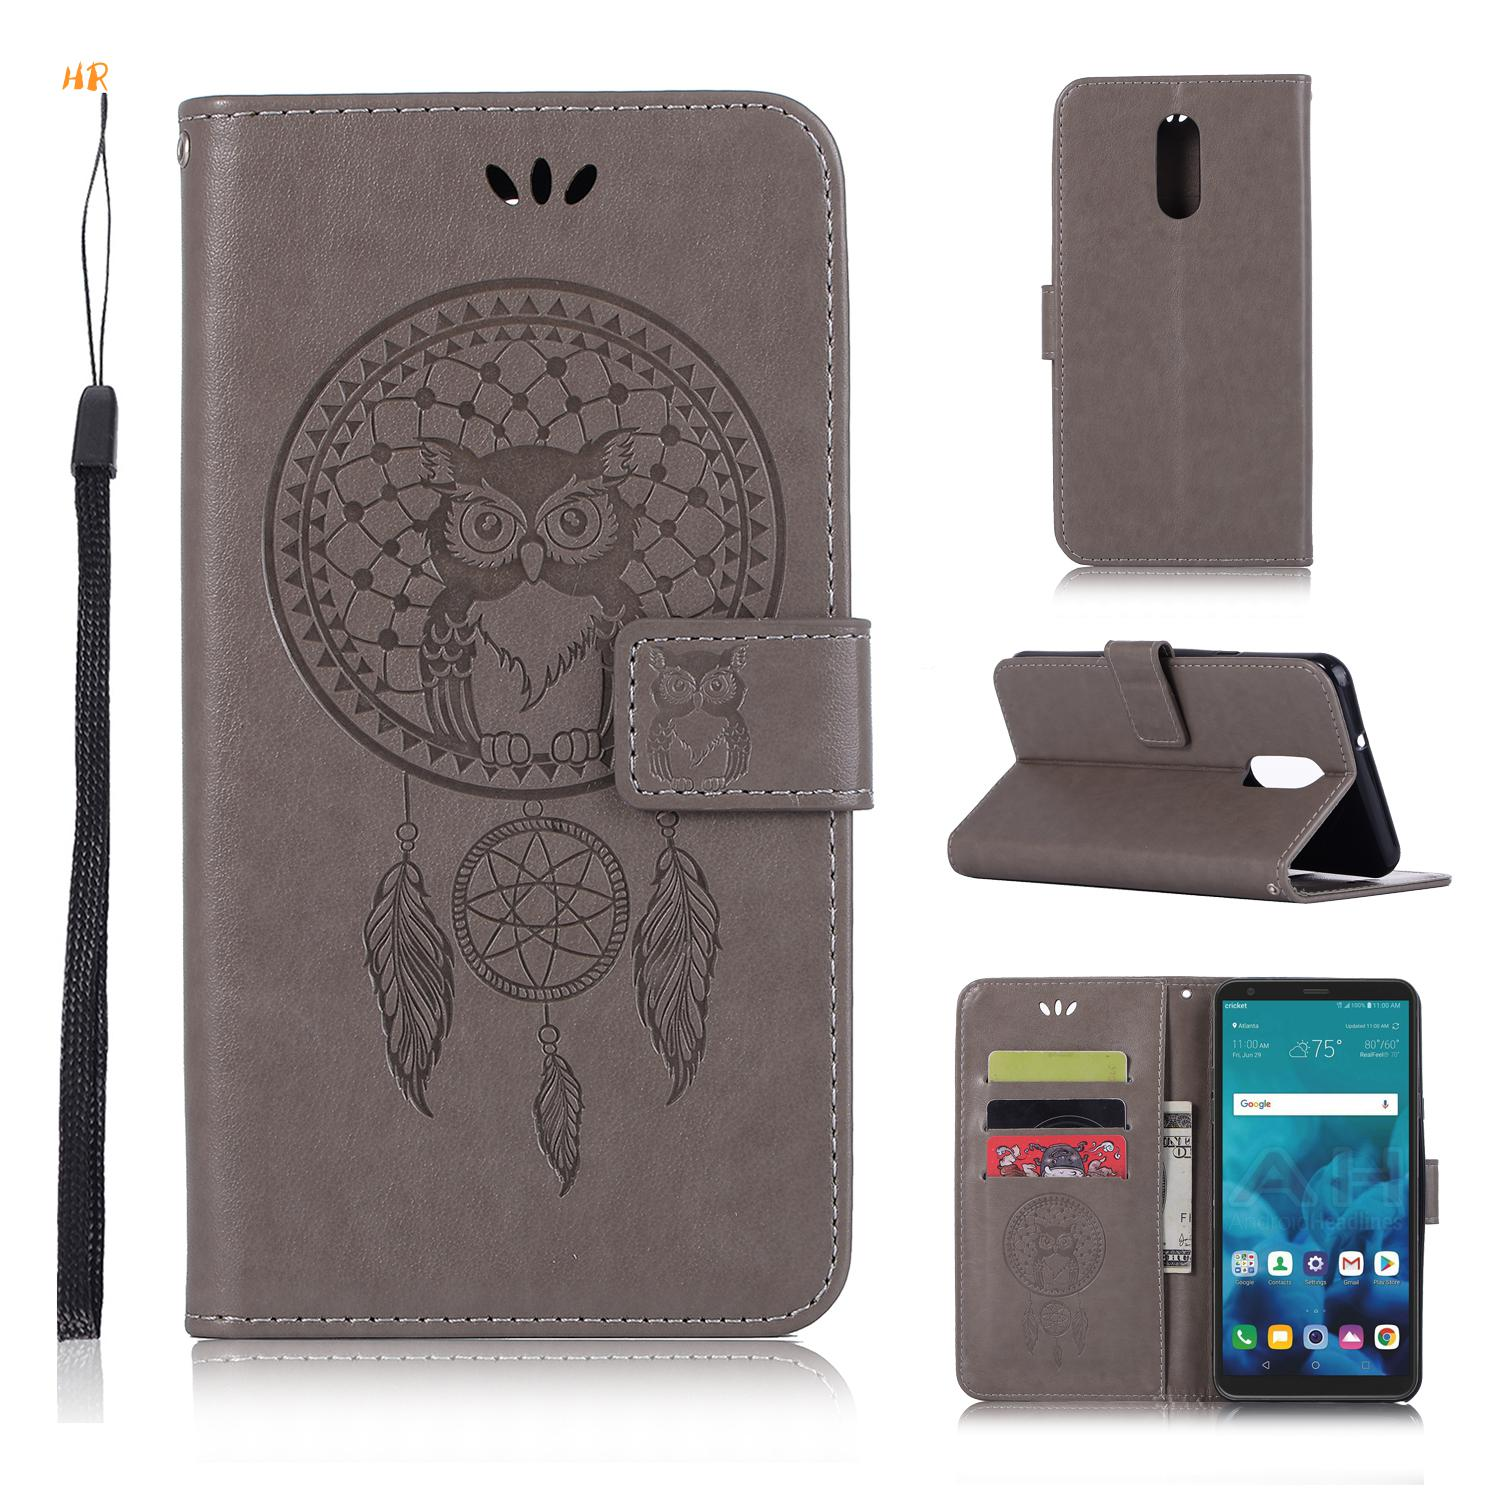 For Lg Stylus 2 K520 New Leather Flip Book Wallet Phone Case Cell Phones & Accessories Cell Phone Accessories Tempered Glass